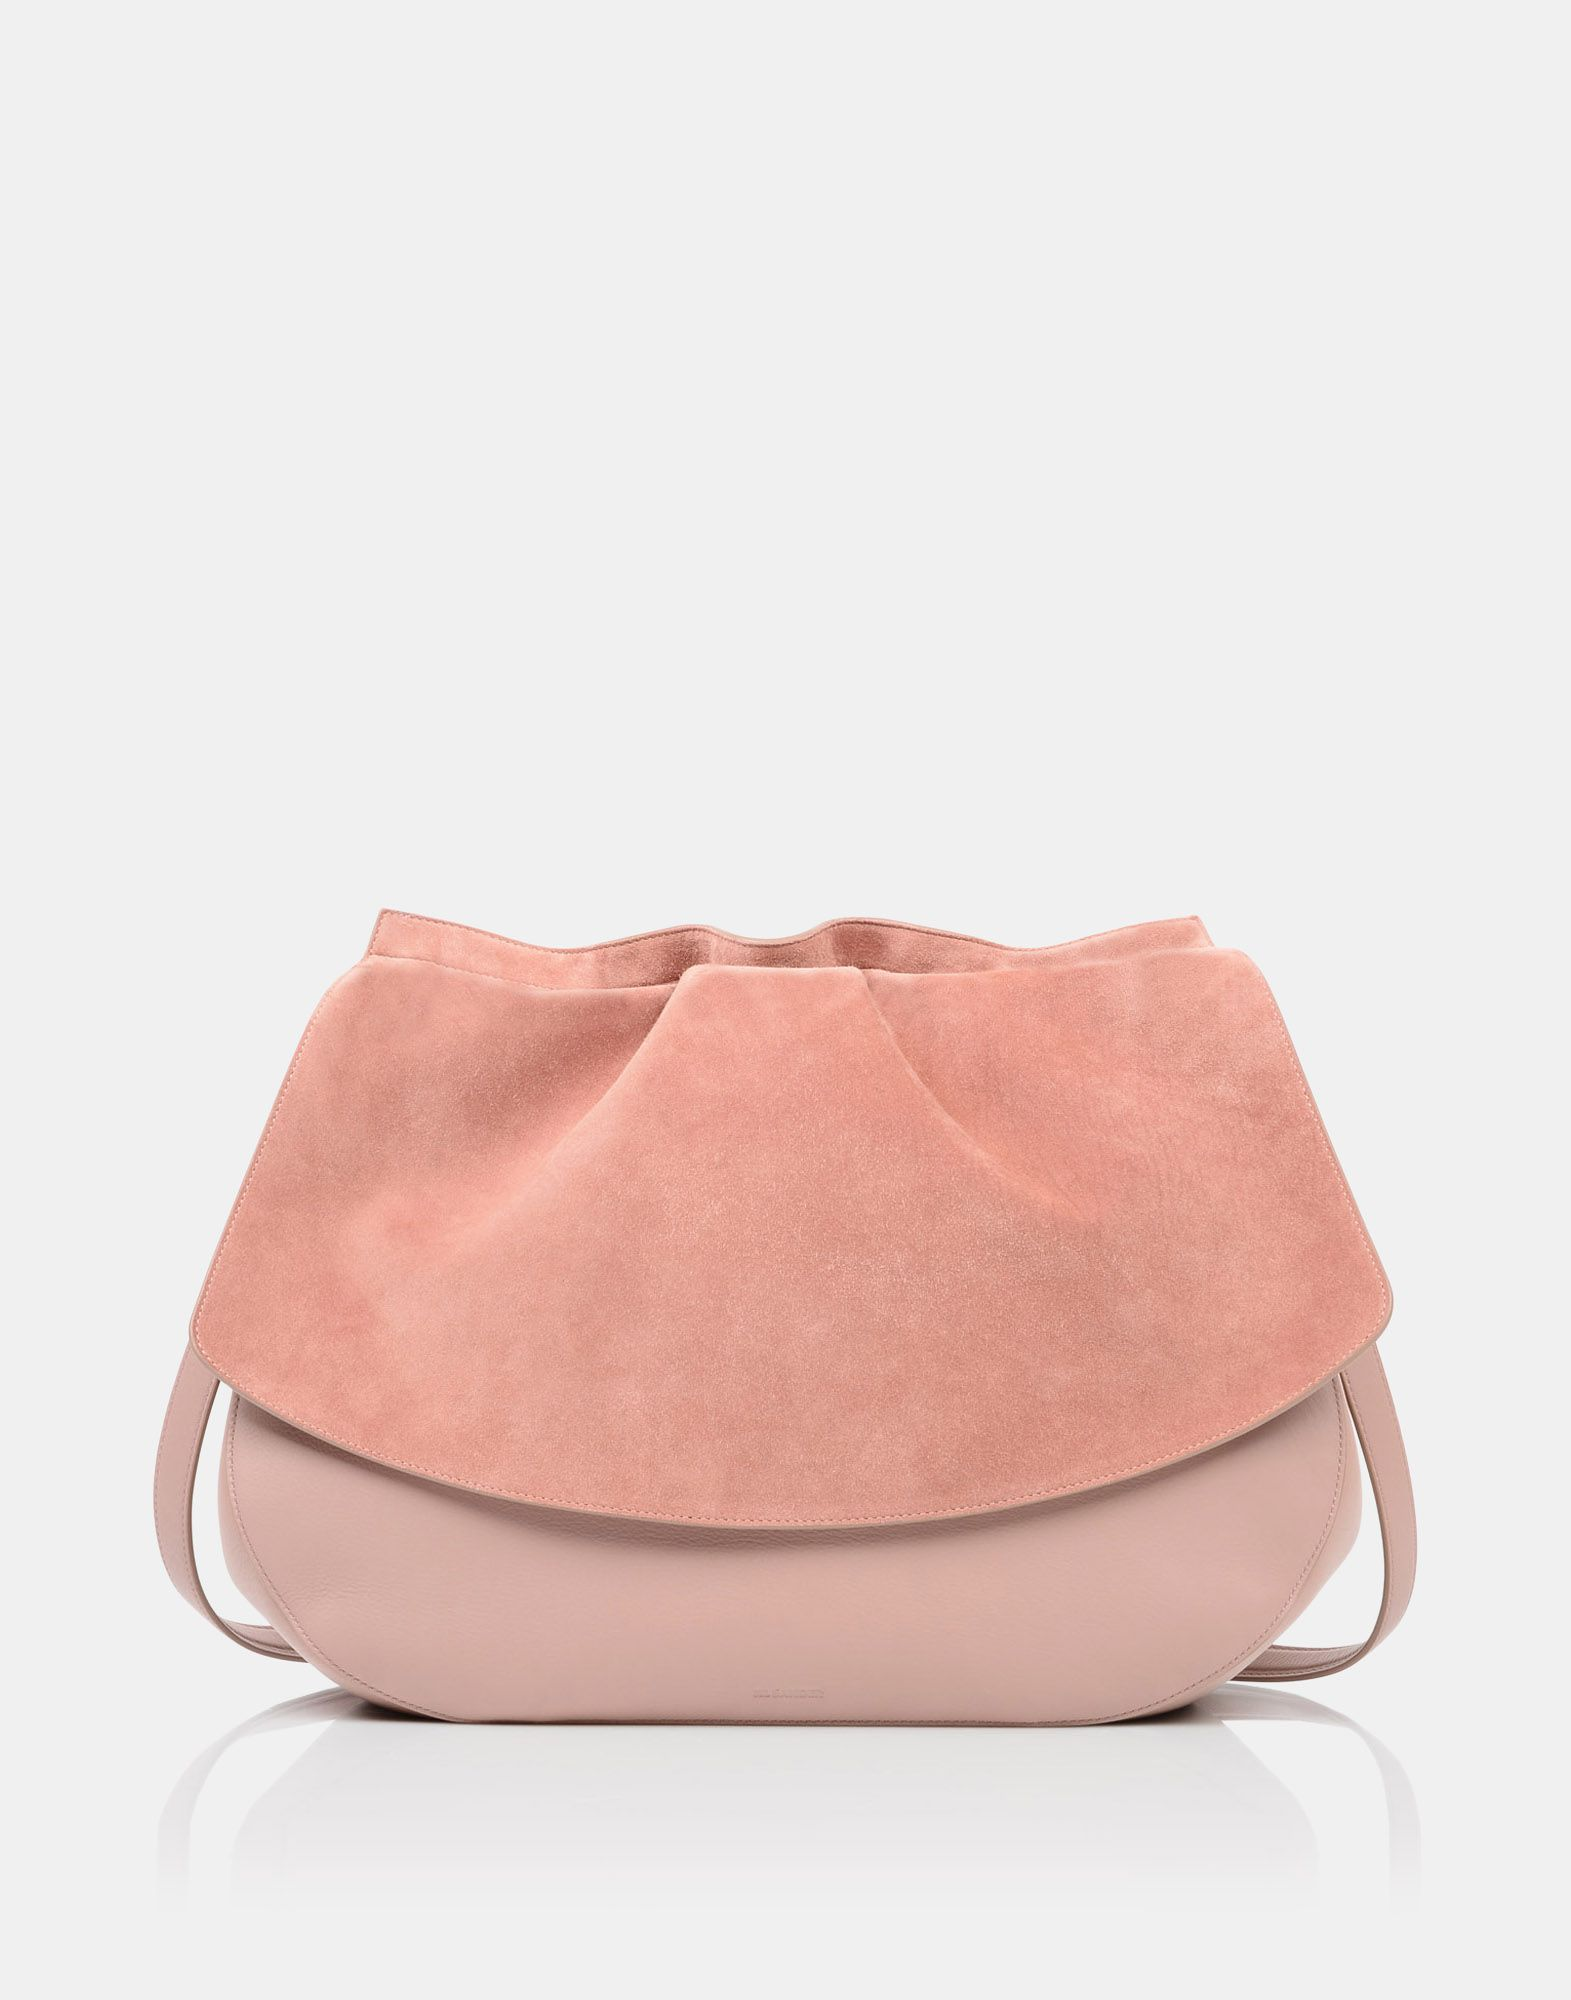 Crossbody bag Women - Bags Women on Jil Sander Online Store 607662b2d18fa